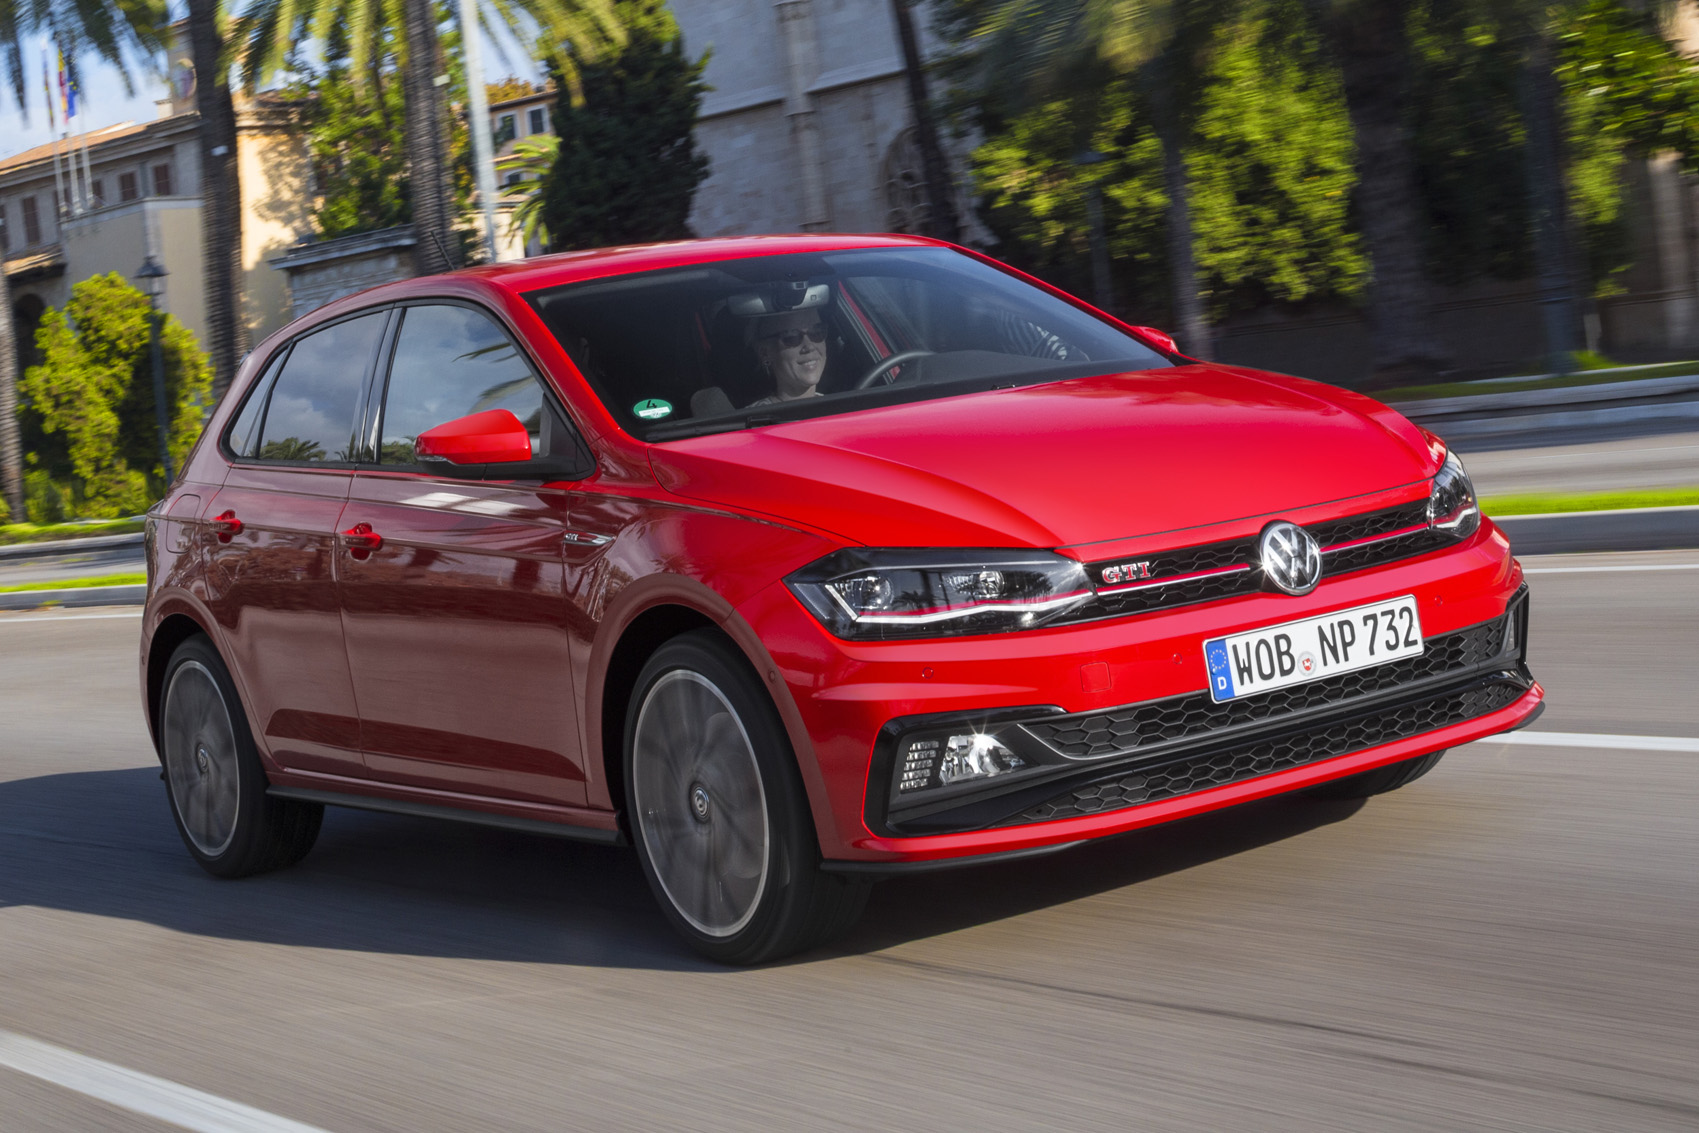 Volkswagen Polo Gti 2018 Review Autocar